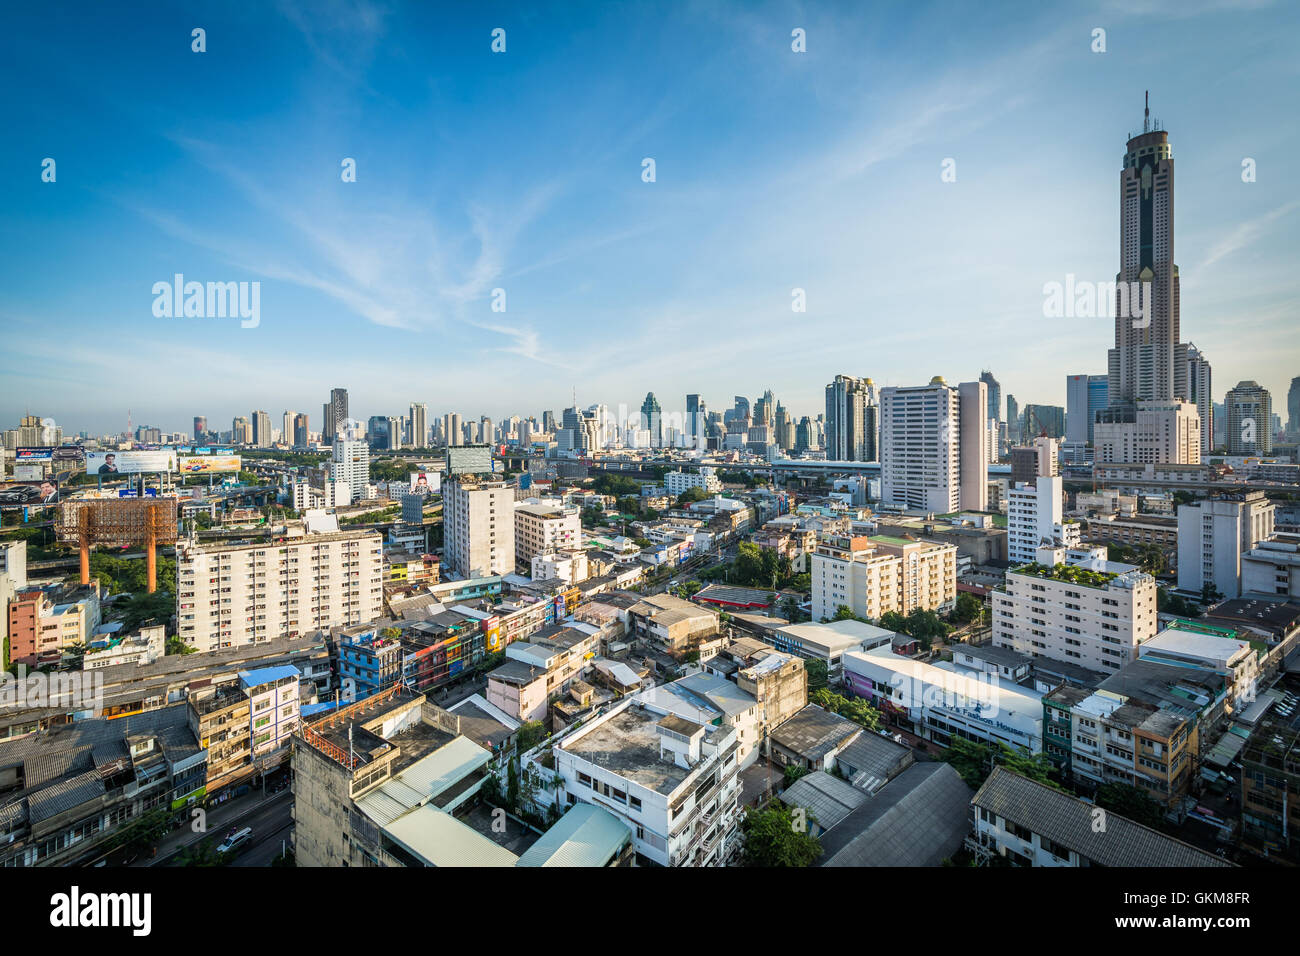 Vue de la Ratchathewi District, à Bangkok, Thaïlande. Photo Stock